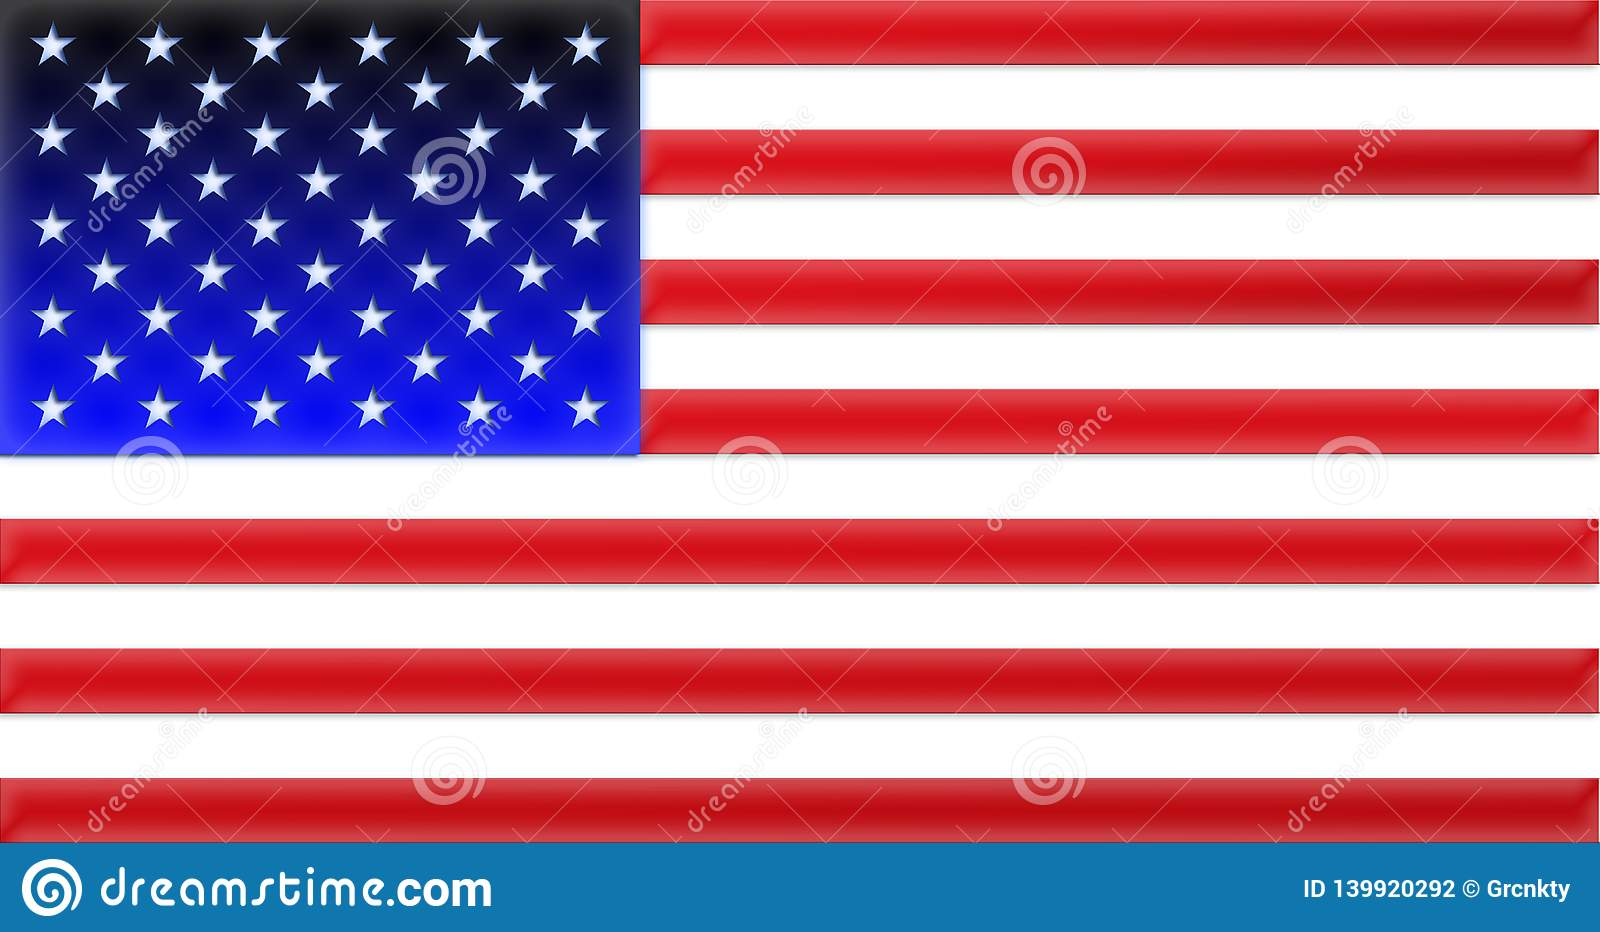 Illustration flag of USA design vector Sticker national flag USA national flag Symbol of nation Vector image of United States